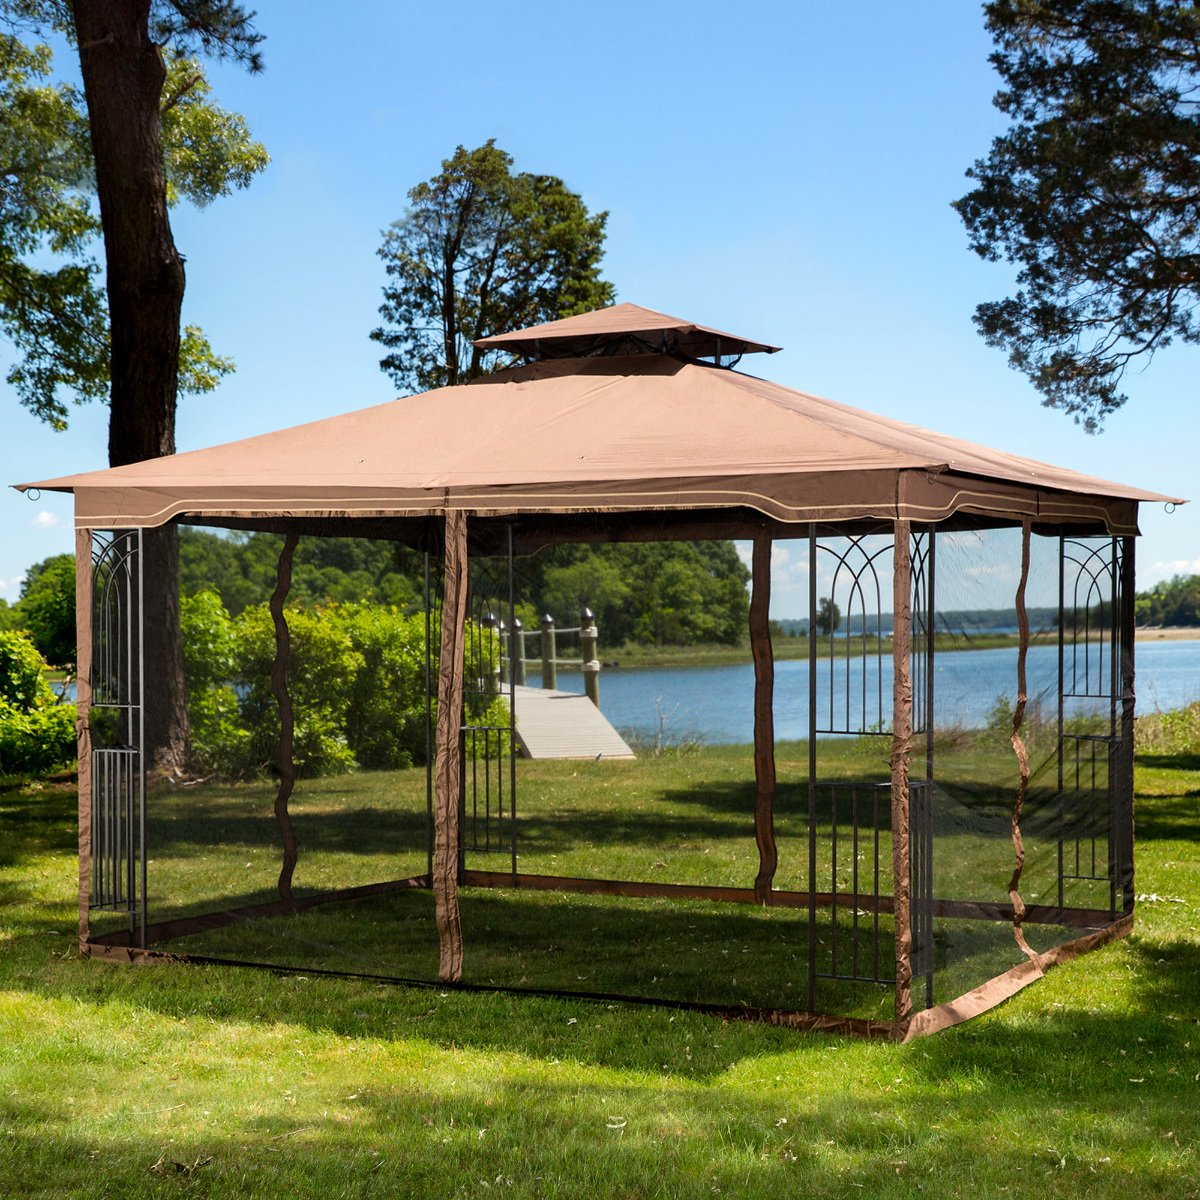 Amazon.com : 10 X 12 Regency II Patio Gazebo With Mosquito Netting : Garden  U0026 Outdoor